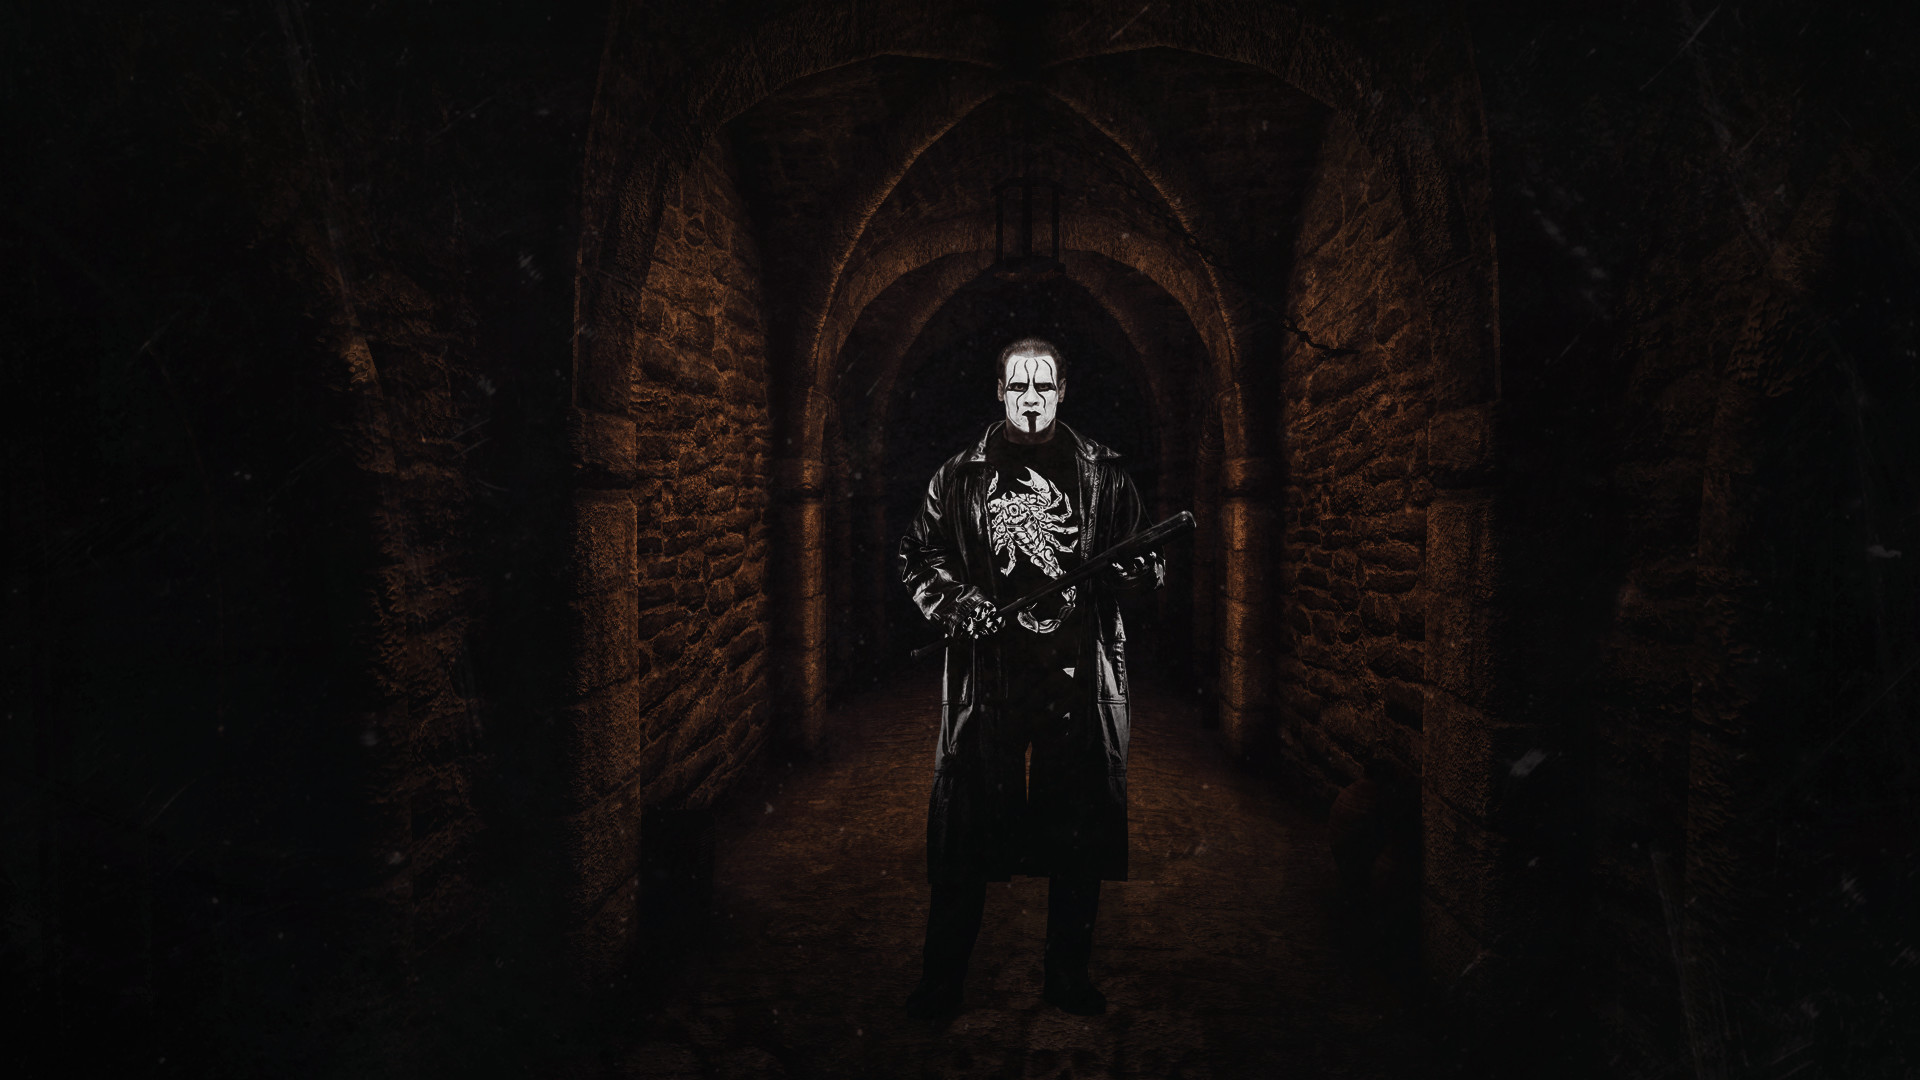 1920x1080 WWE Wallpaper of Sting - WallpaperSafari